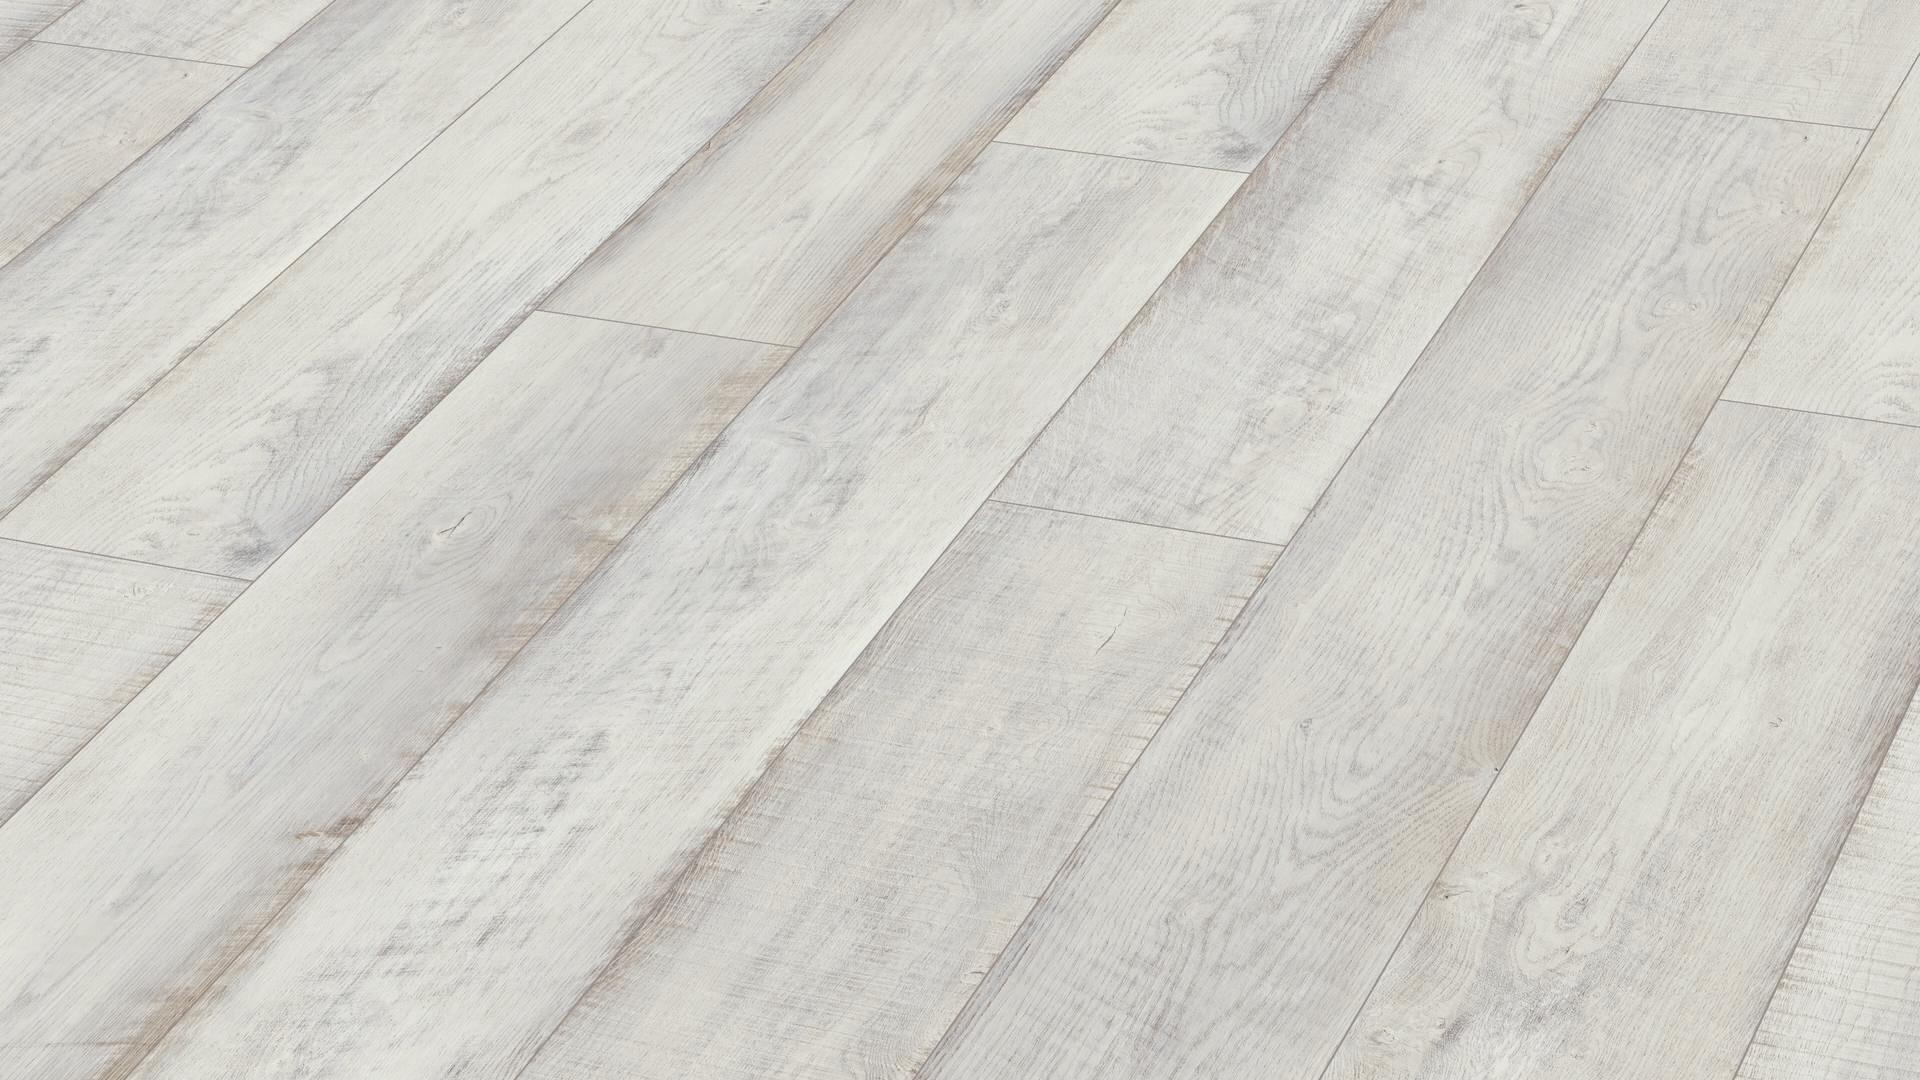 Laminate flooring MeisterDesign. laminate LD 55 Urbanville oak 6680